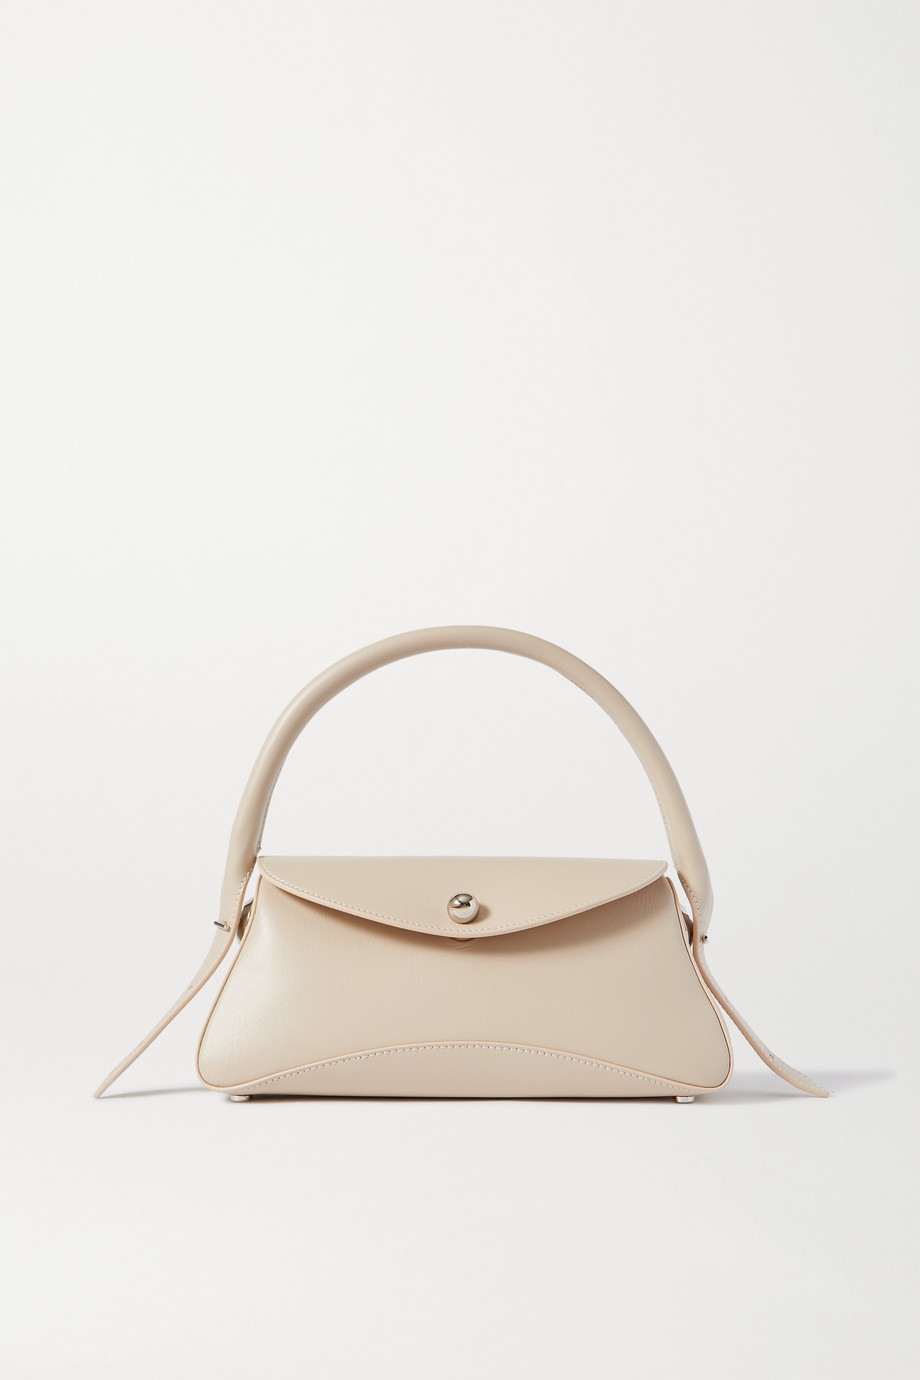 Ratio et Motus Cosmo leather shoulder bag